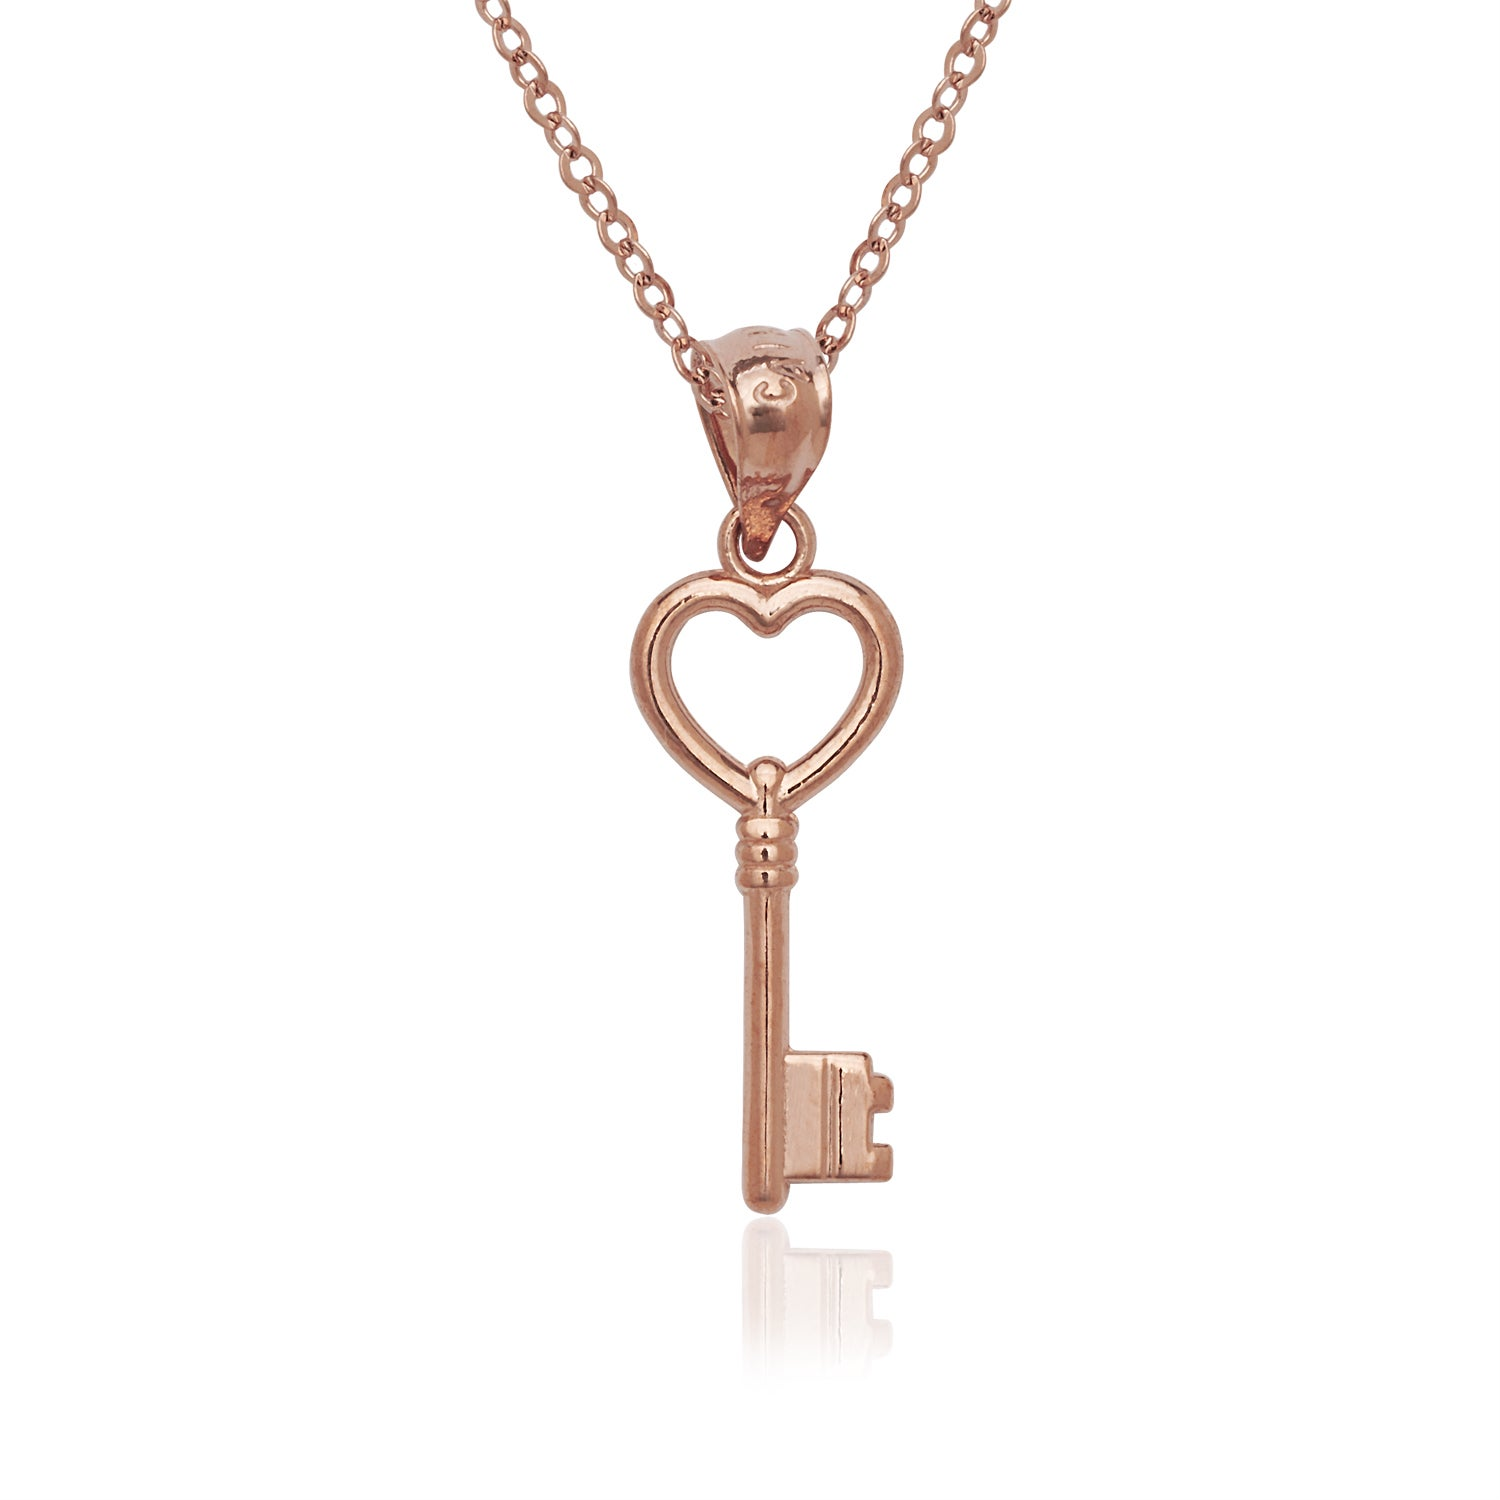 14k Yellow and Rose Gold Heart Love Key Pendant Necklace